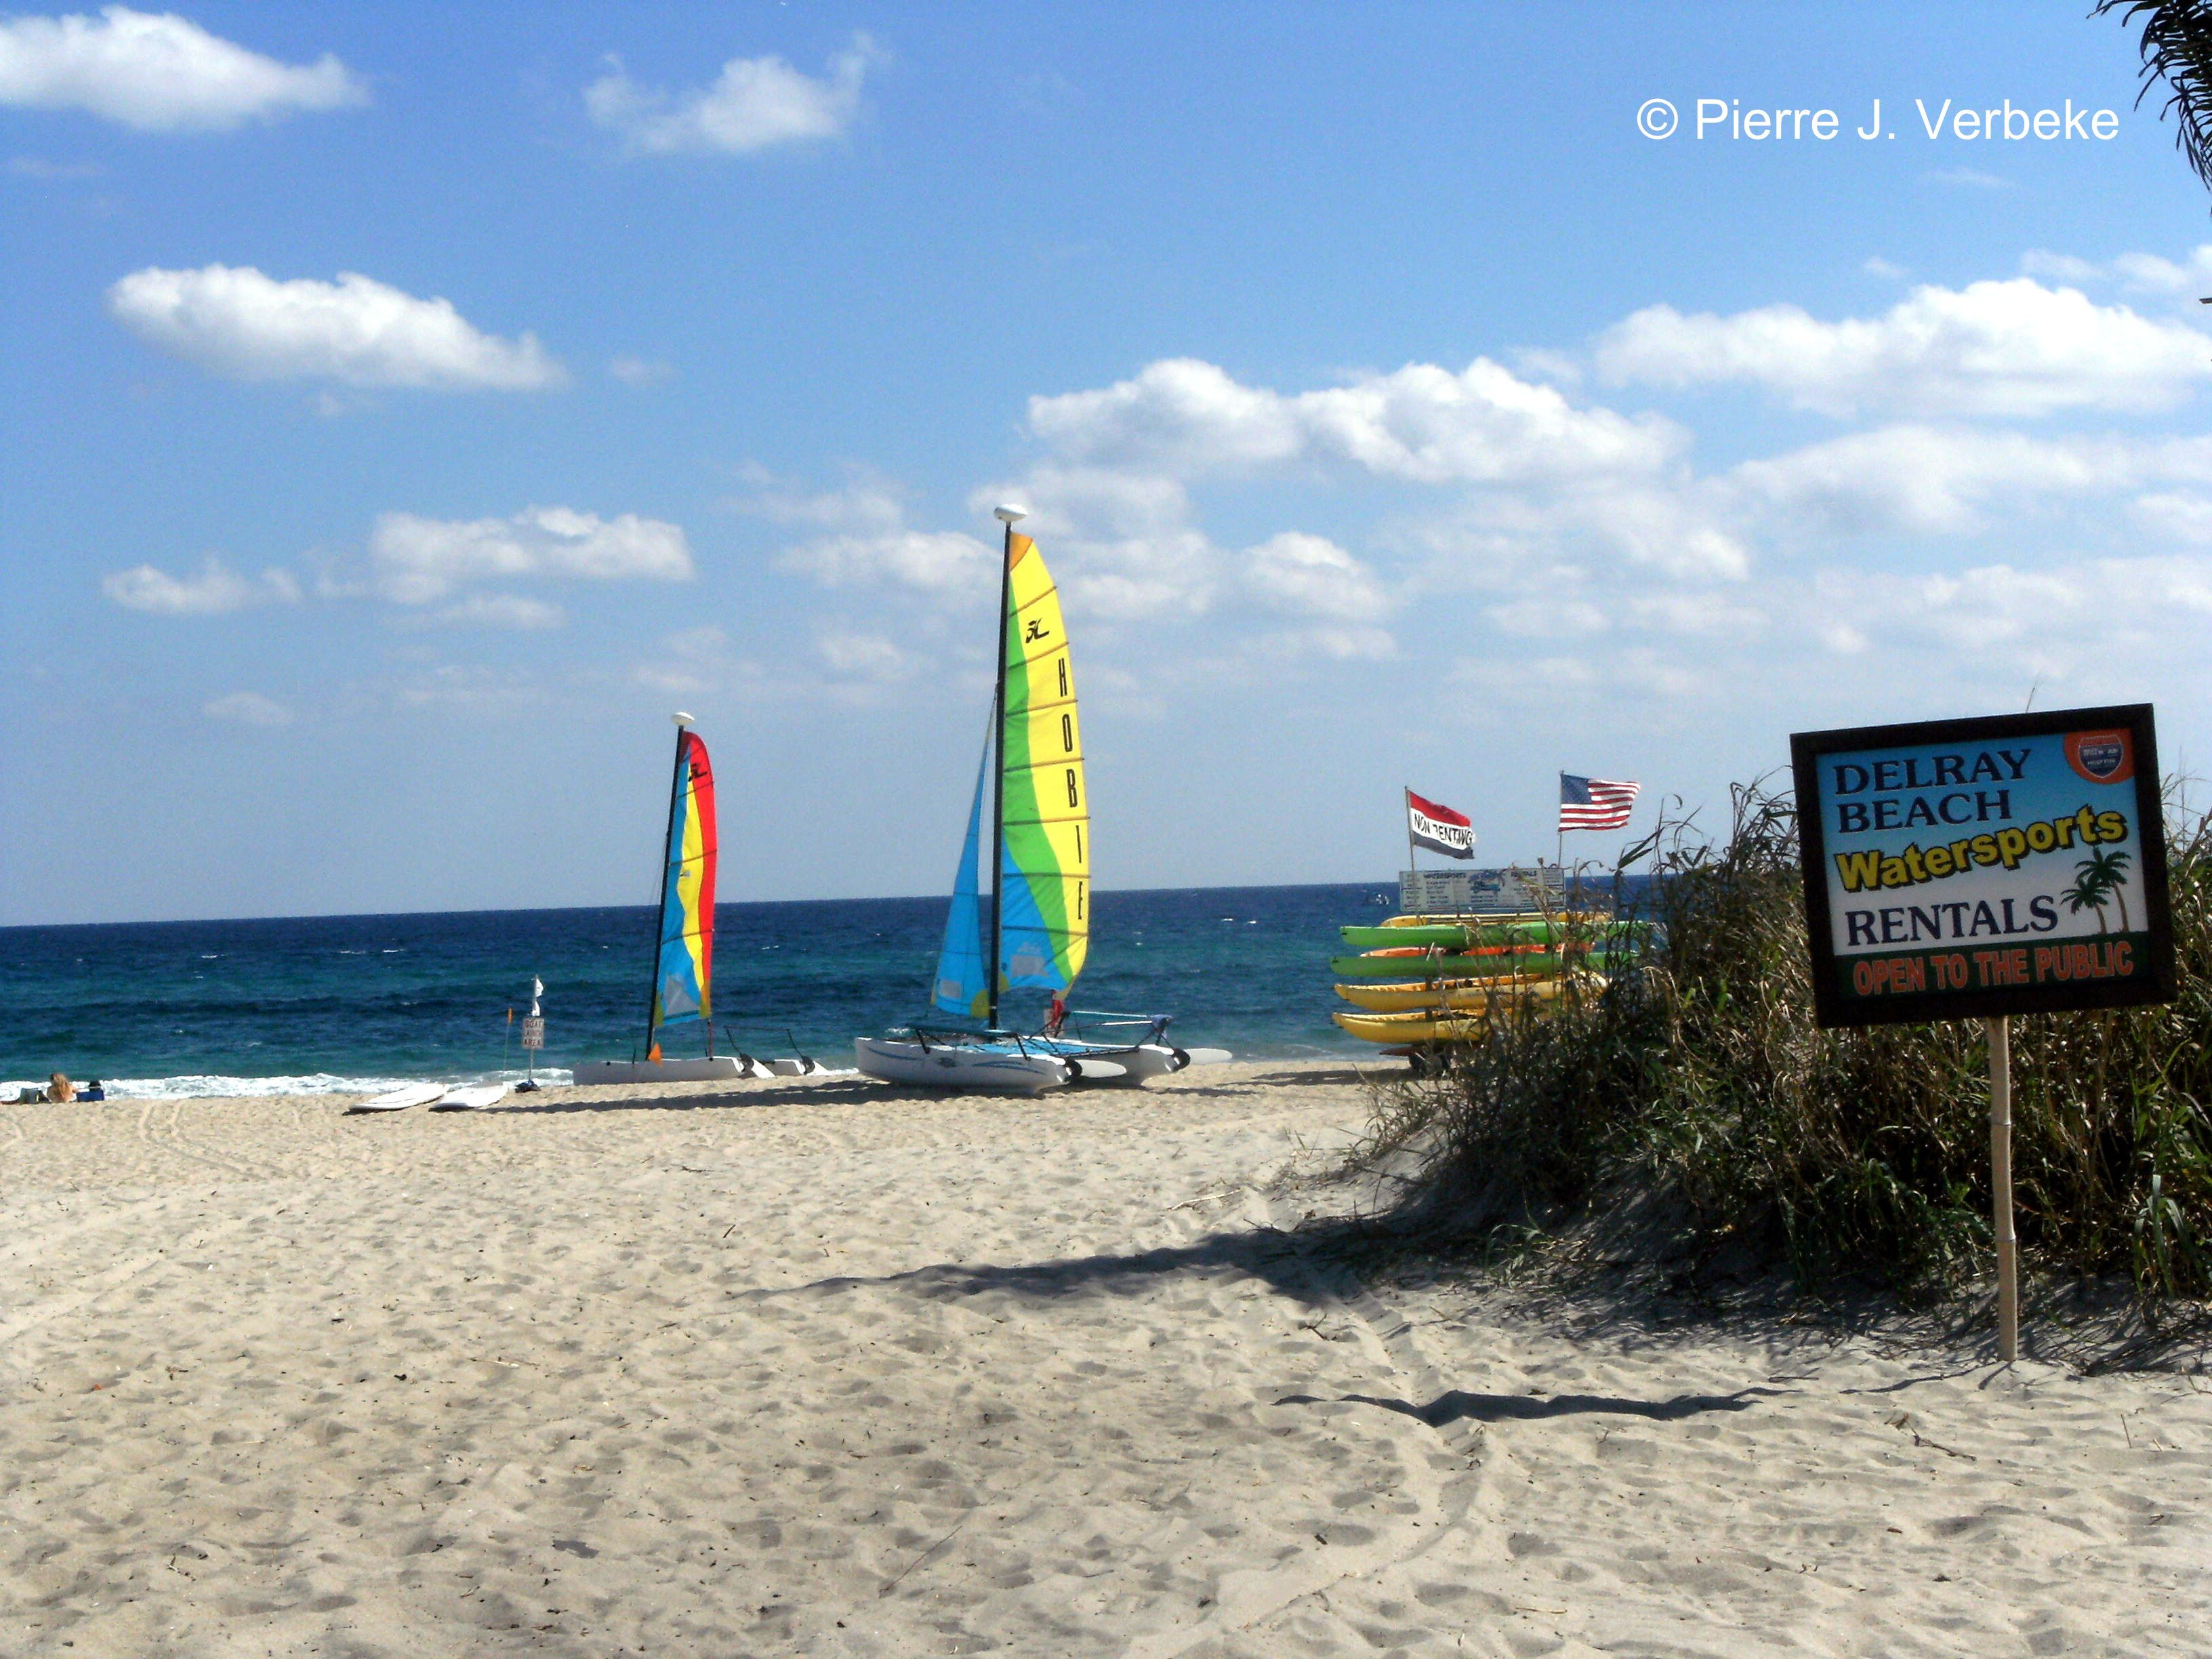 Delray Beach Paddle Boarding Scuba Diving Snorkeling Windsurfing Are Some Of The Fun Activities You Can Do Under Sun In